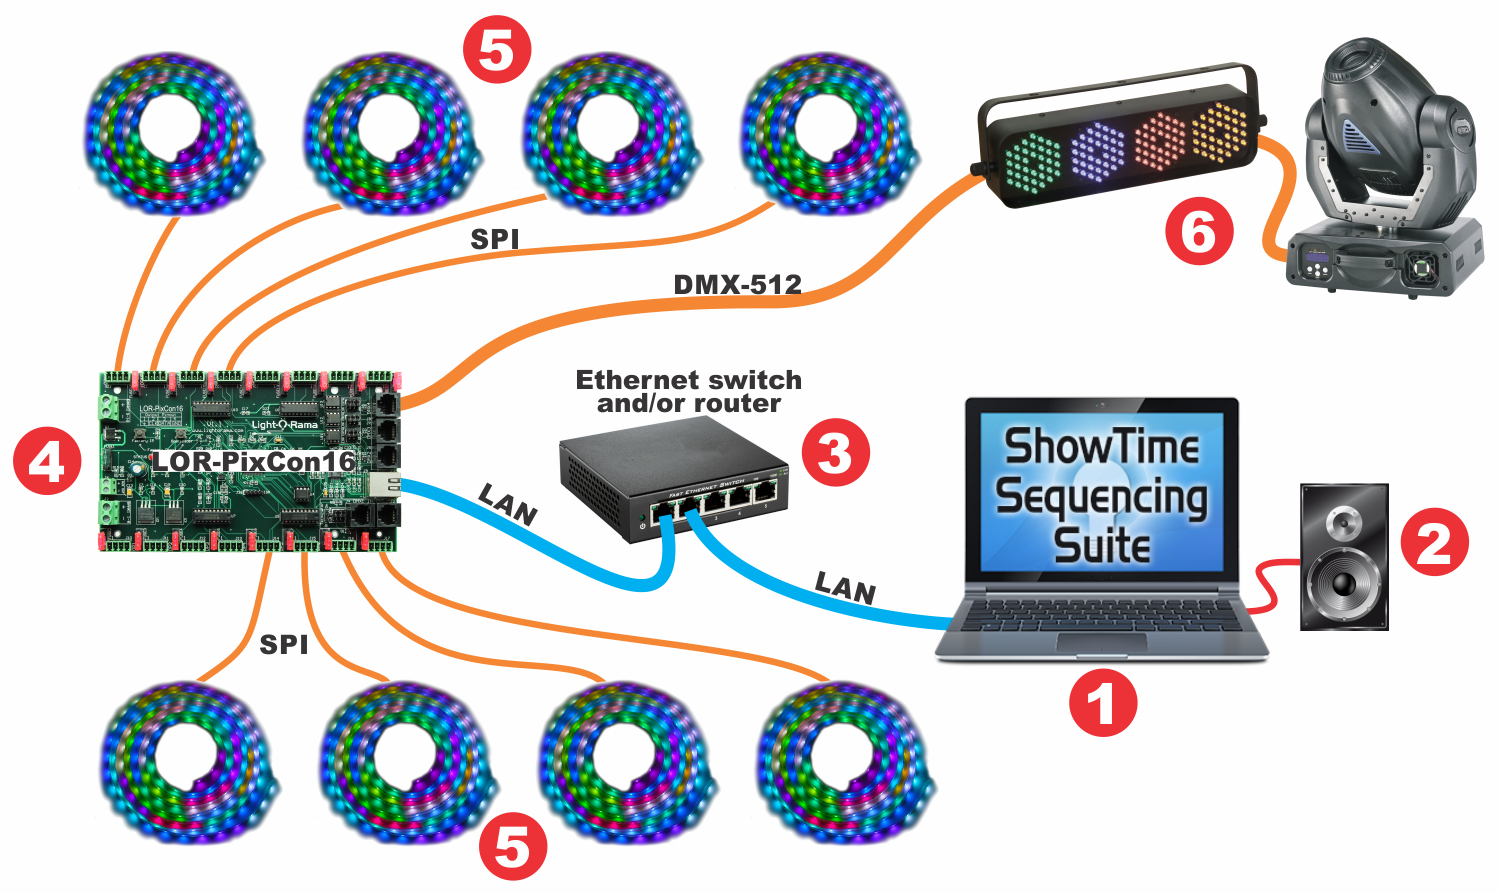 hight resolution of basic layout with lor pixcon16 smart pixel controller using e1 31 network